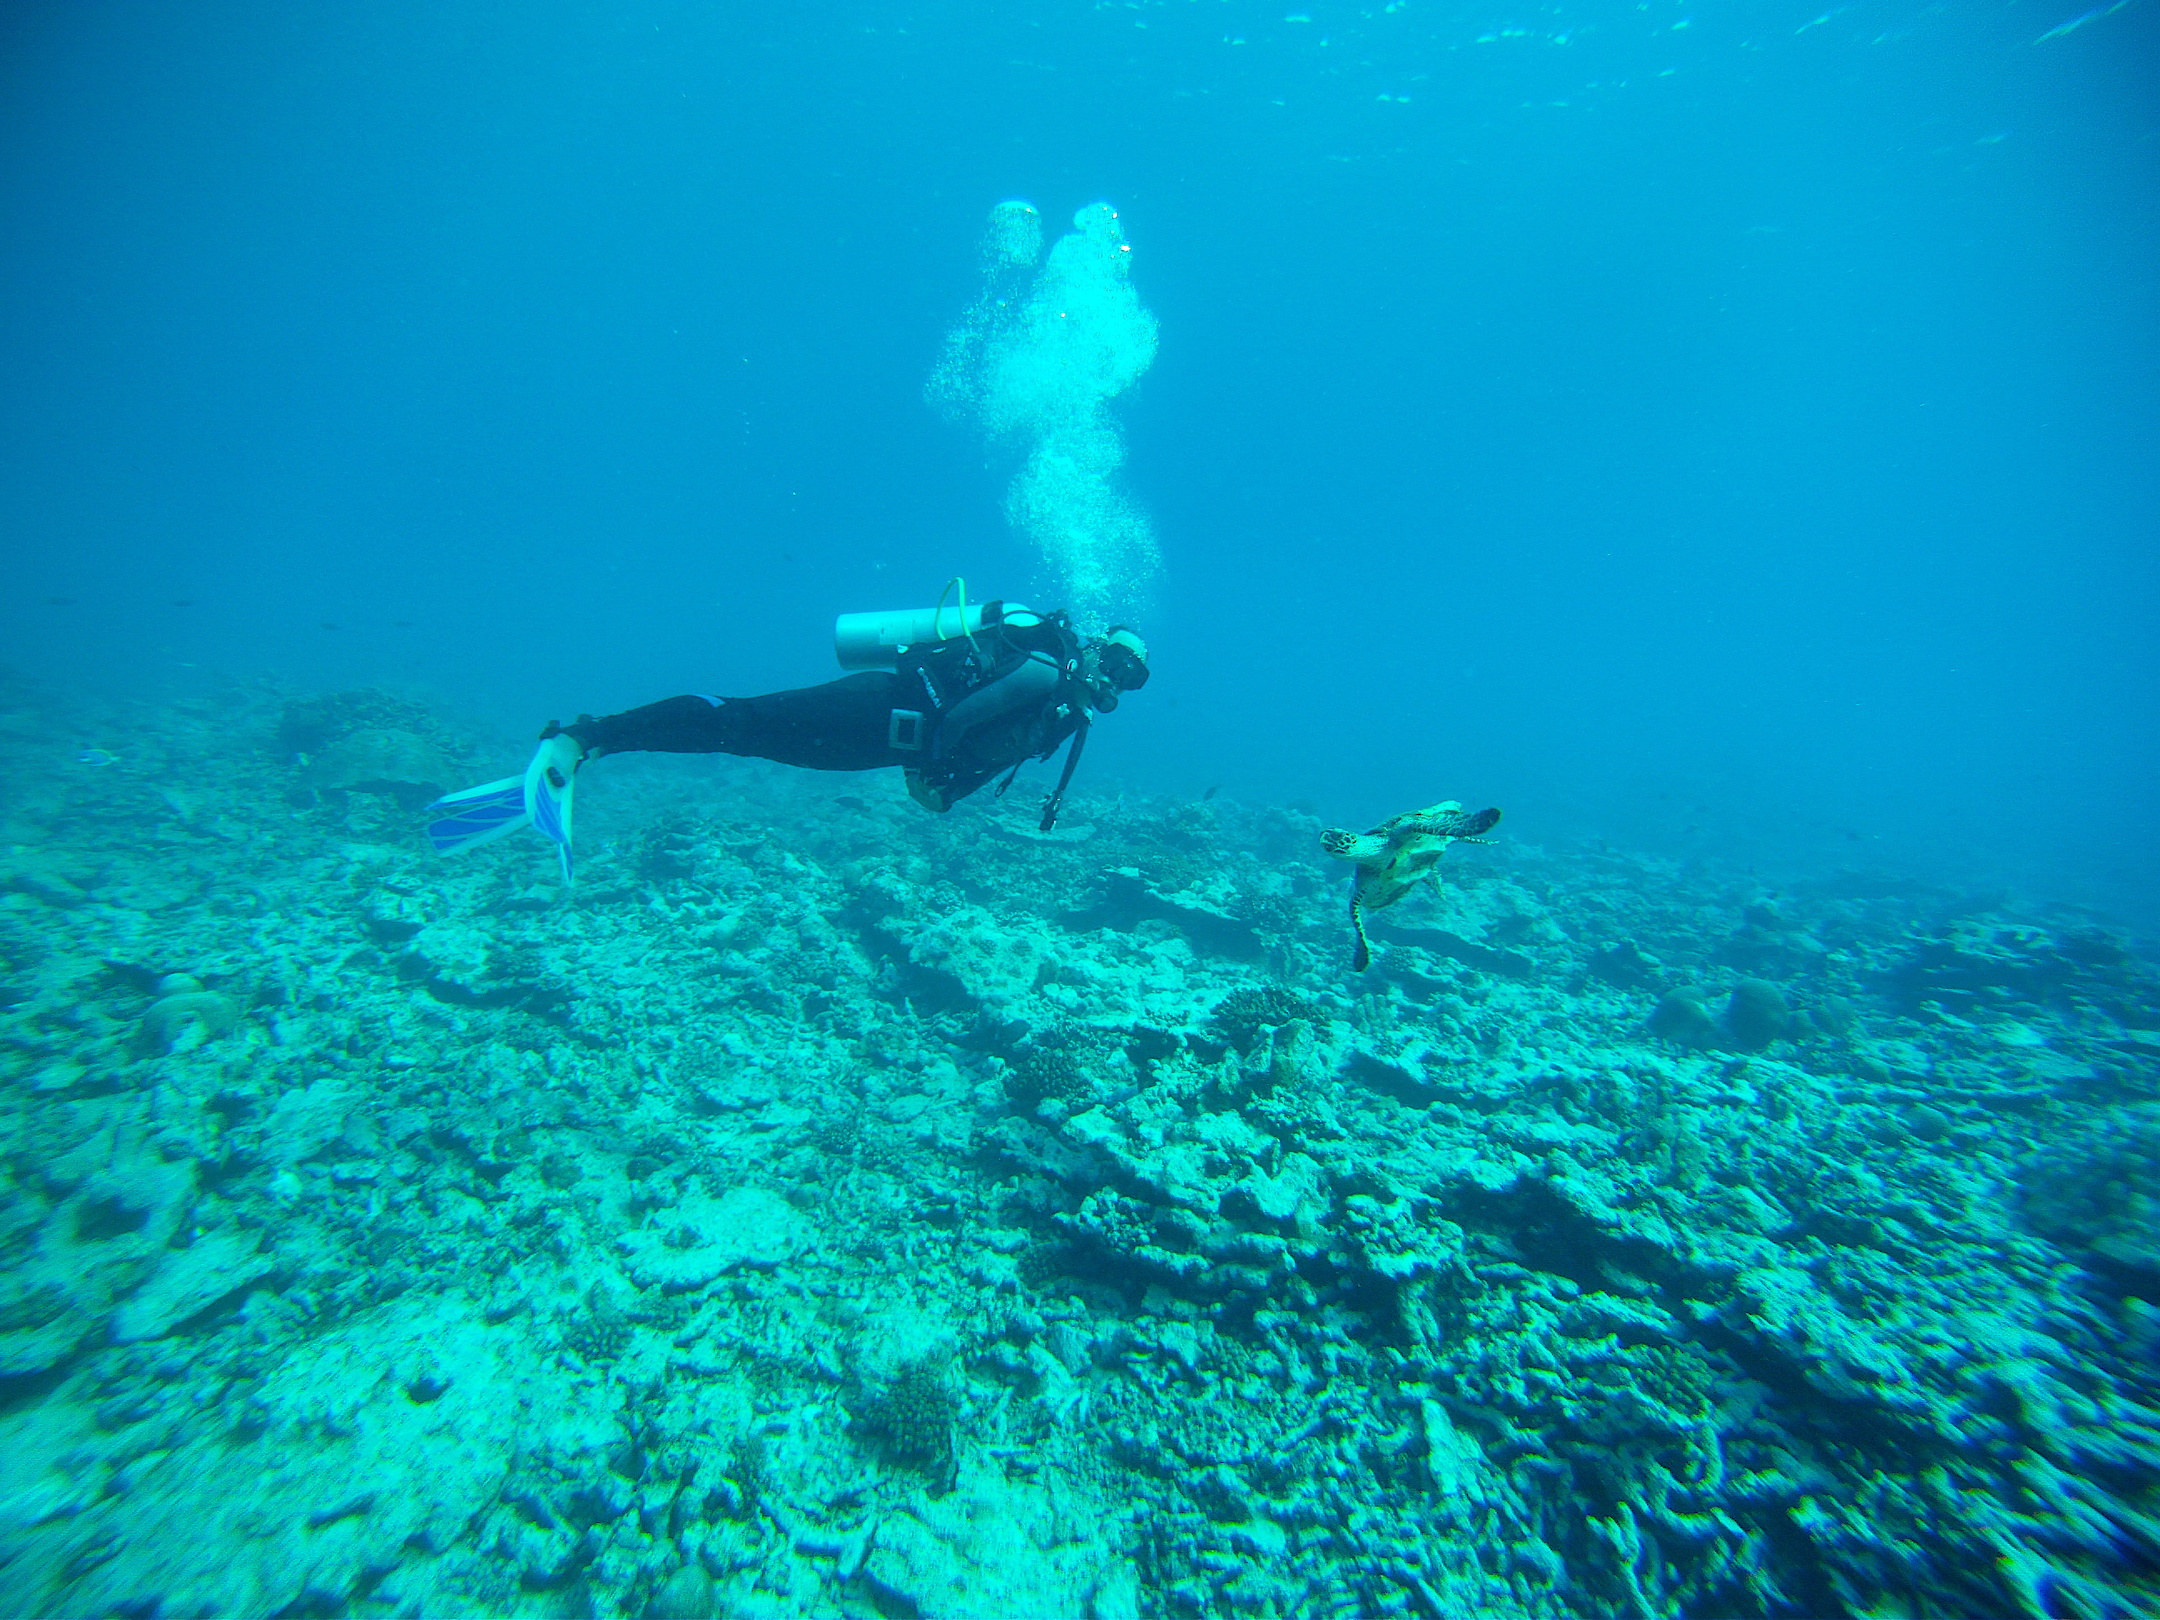 Kartik Shanker encounters a hawksbill turtle diving in the Lakshadweep. Photo: Mahima Jaini